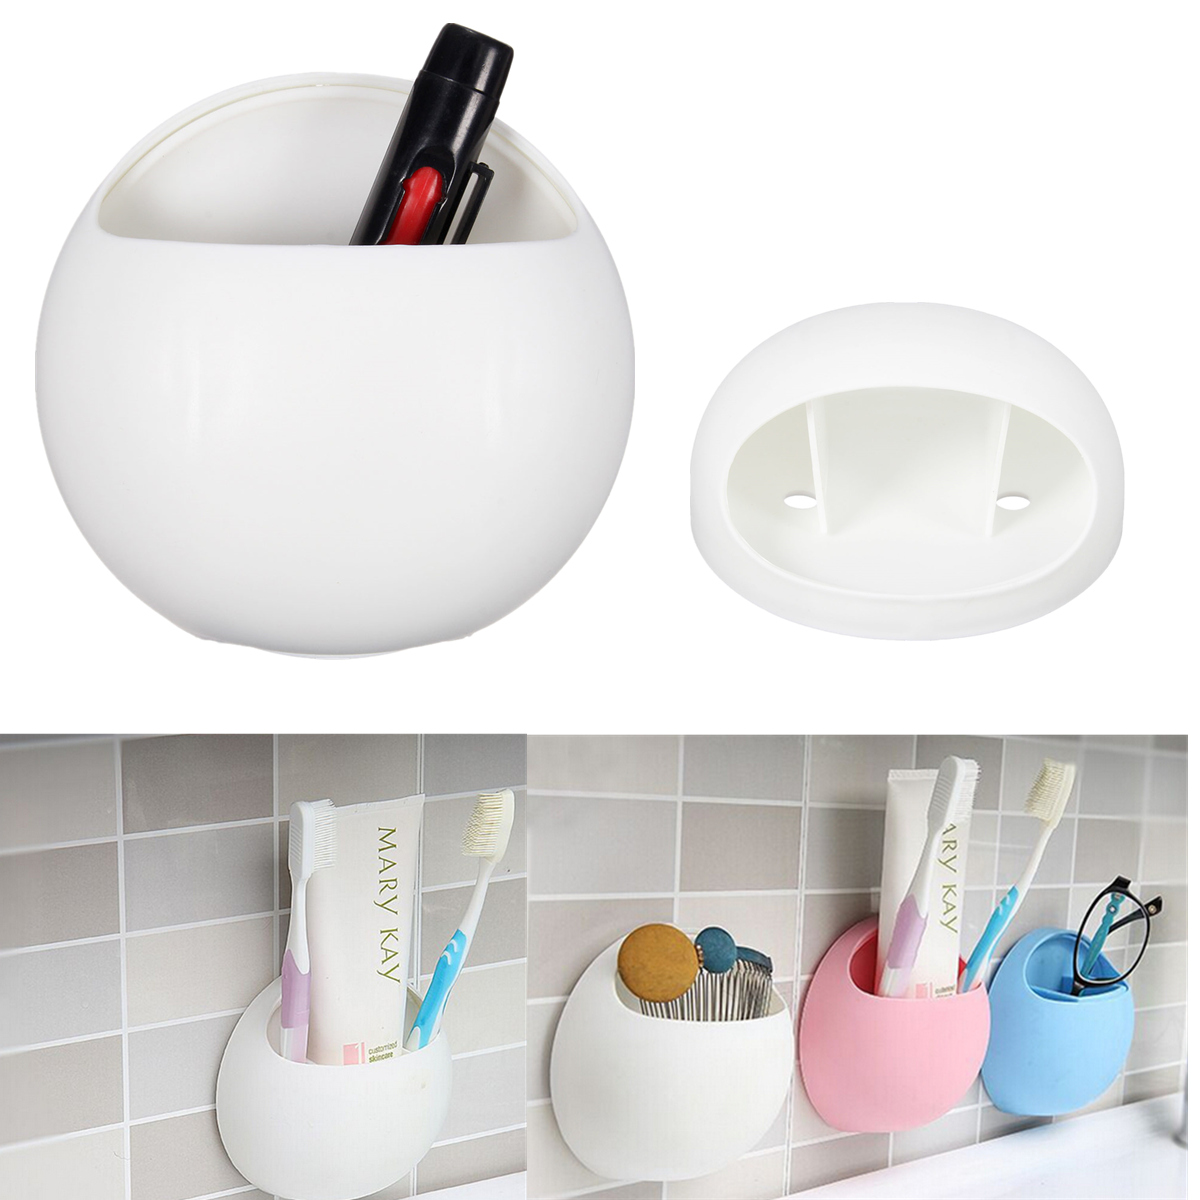 porte brosse dent ventouse mural support toothbrush holder tasse salle de bain ebay. Black Bedroom Furniture Sets. Home Design Ideas